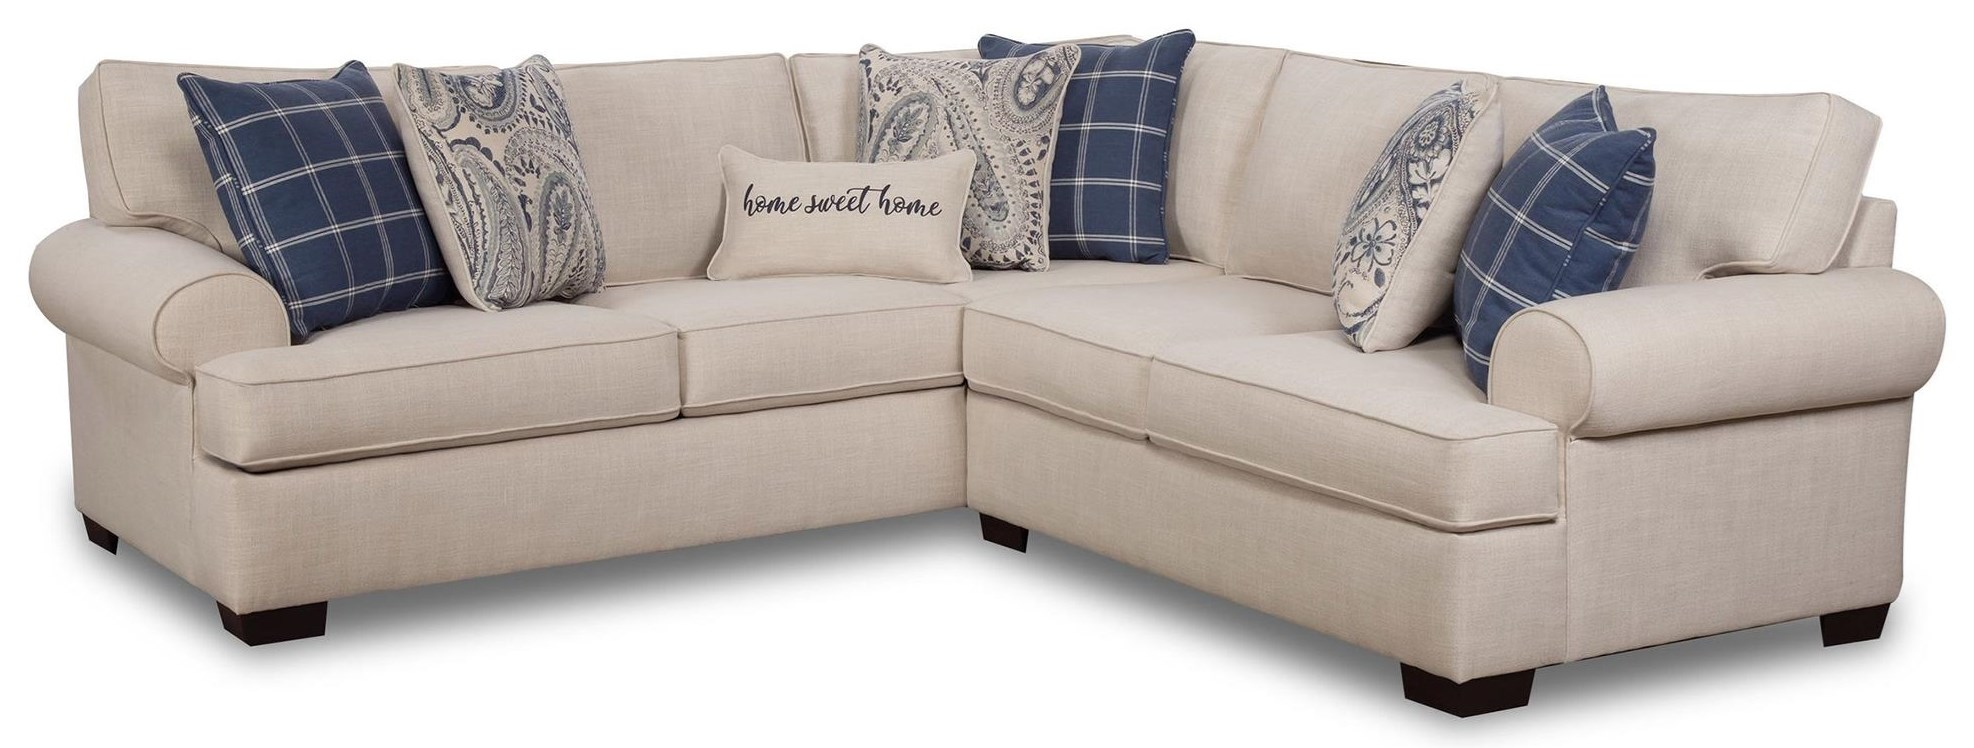 Lynette 2PC Sectional Sofa at Rotmans